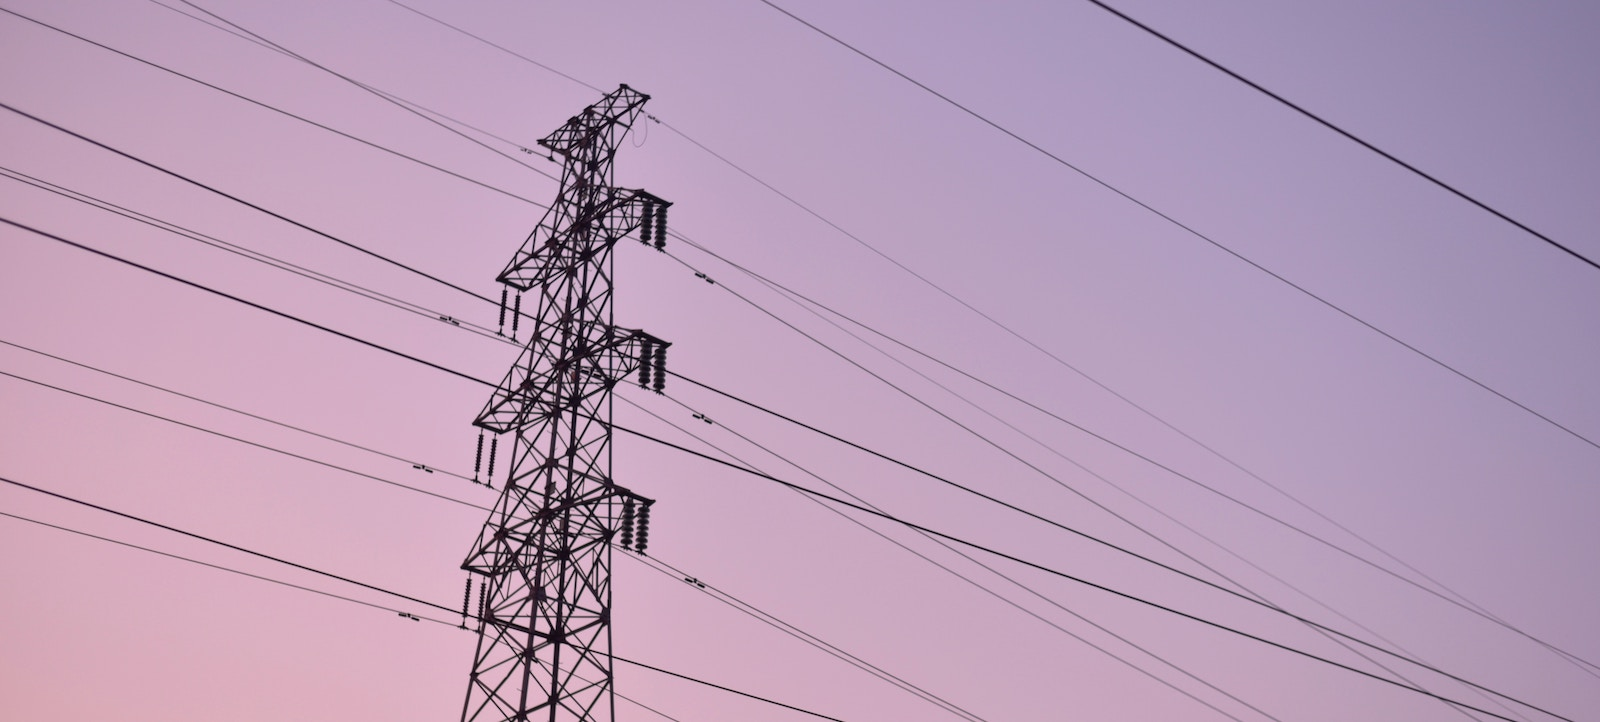 High tension lines carrying electricity